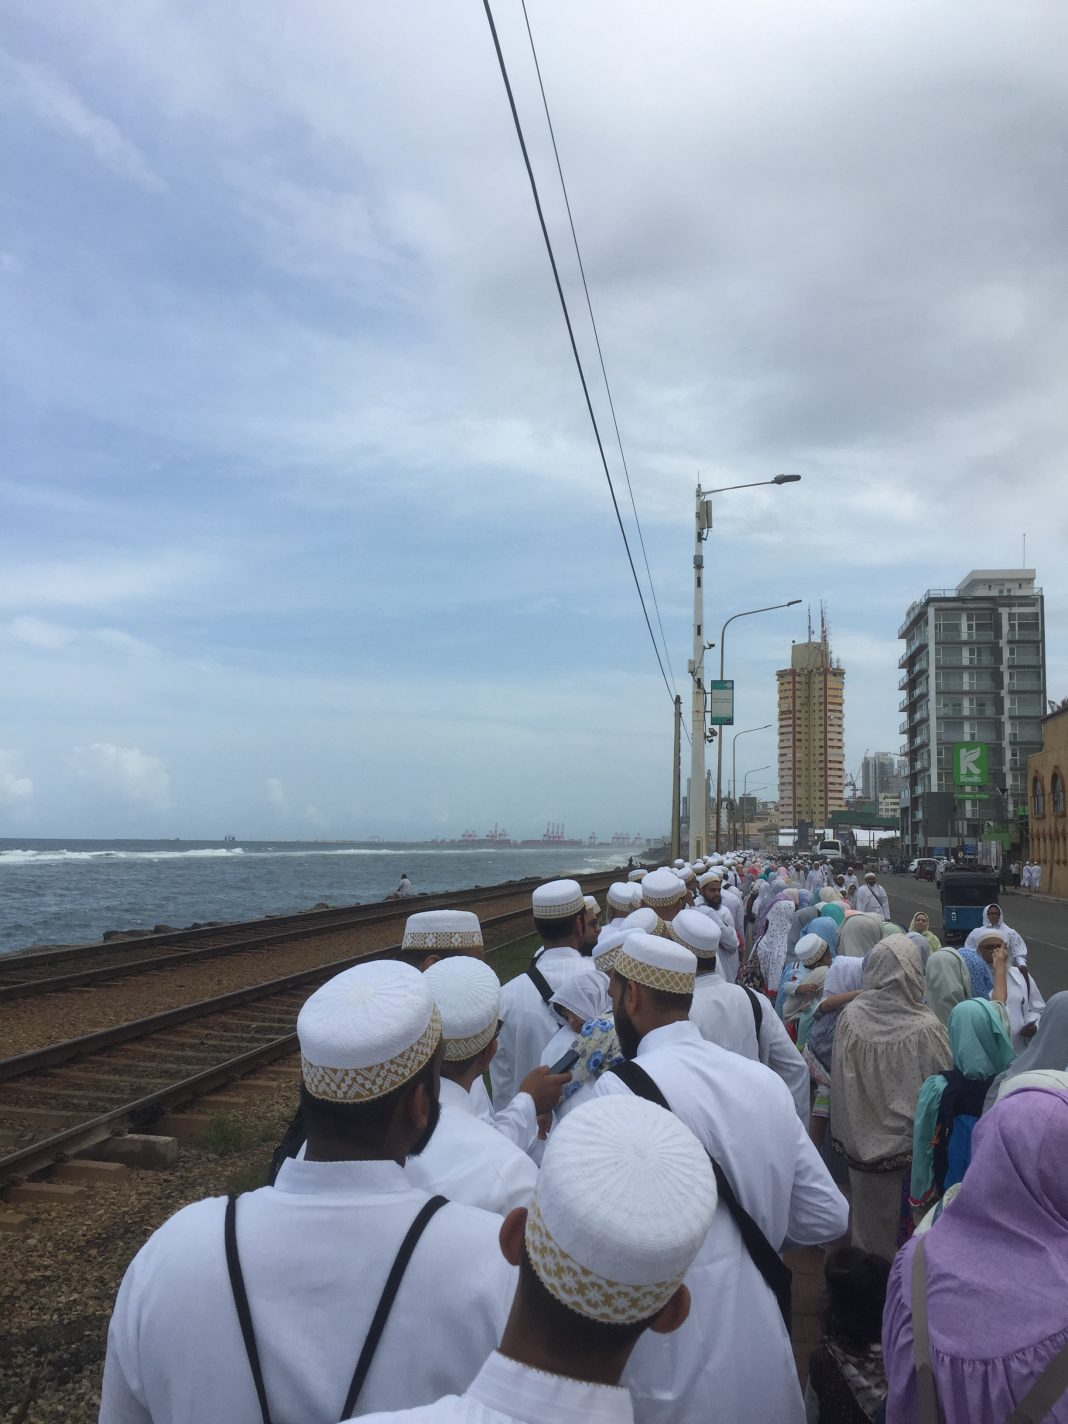 Bohras wait in line for entry to their masjid